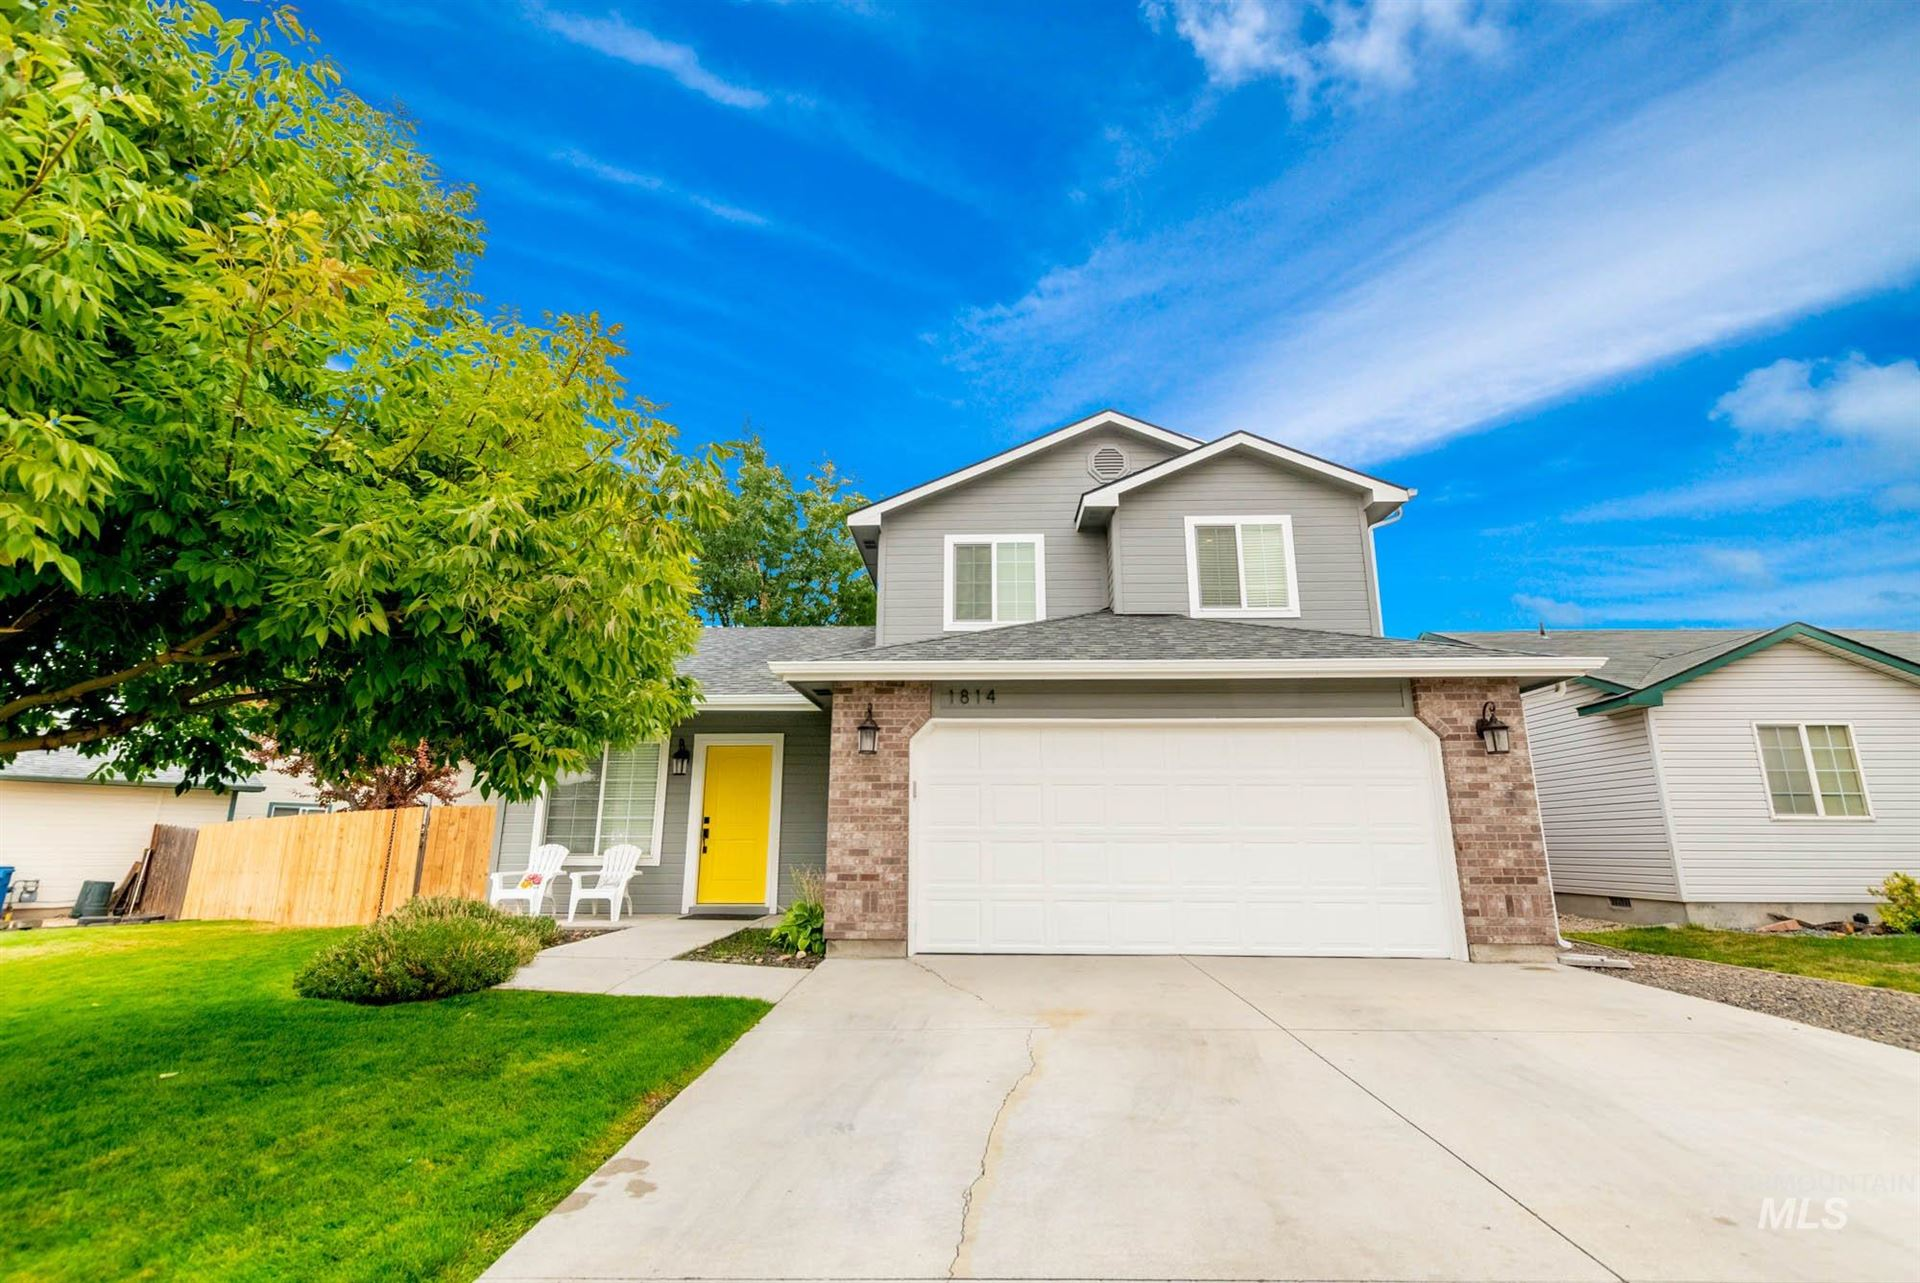 1814 S Candlewood Dr, Nampa, ID 83686 - MLS#: 98781626